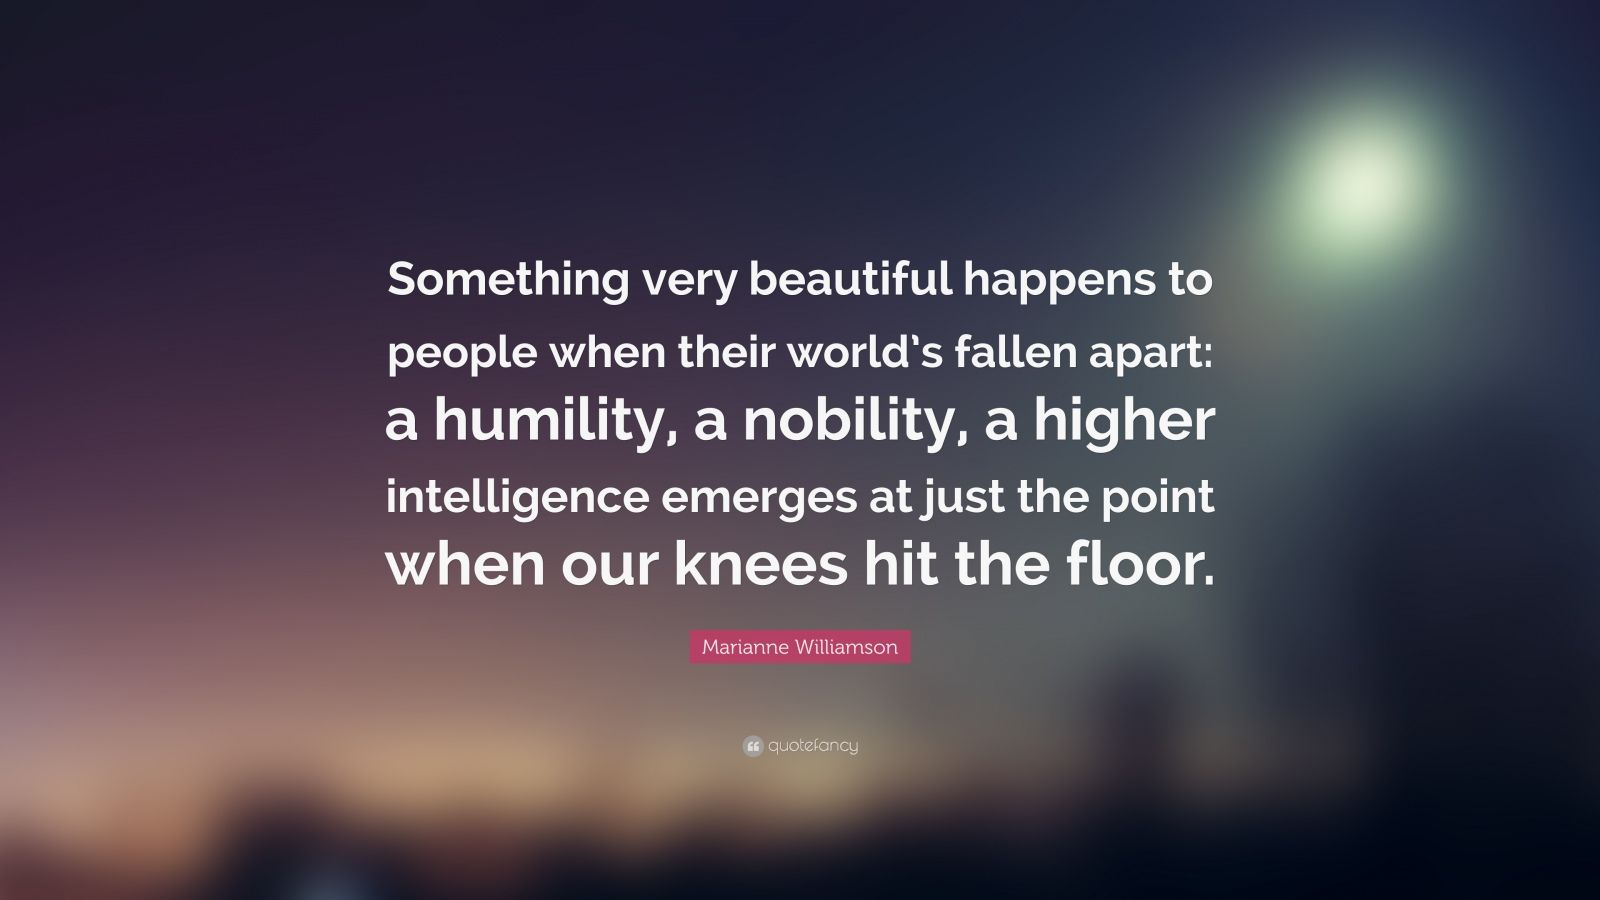 "Marianne Williamson Quote: ""Something very beautiful happens to people when their world's fallen apart: a humility, a nobility, a higher intelligence emerges at just the point when our knees hit the floor."""